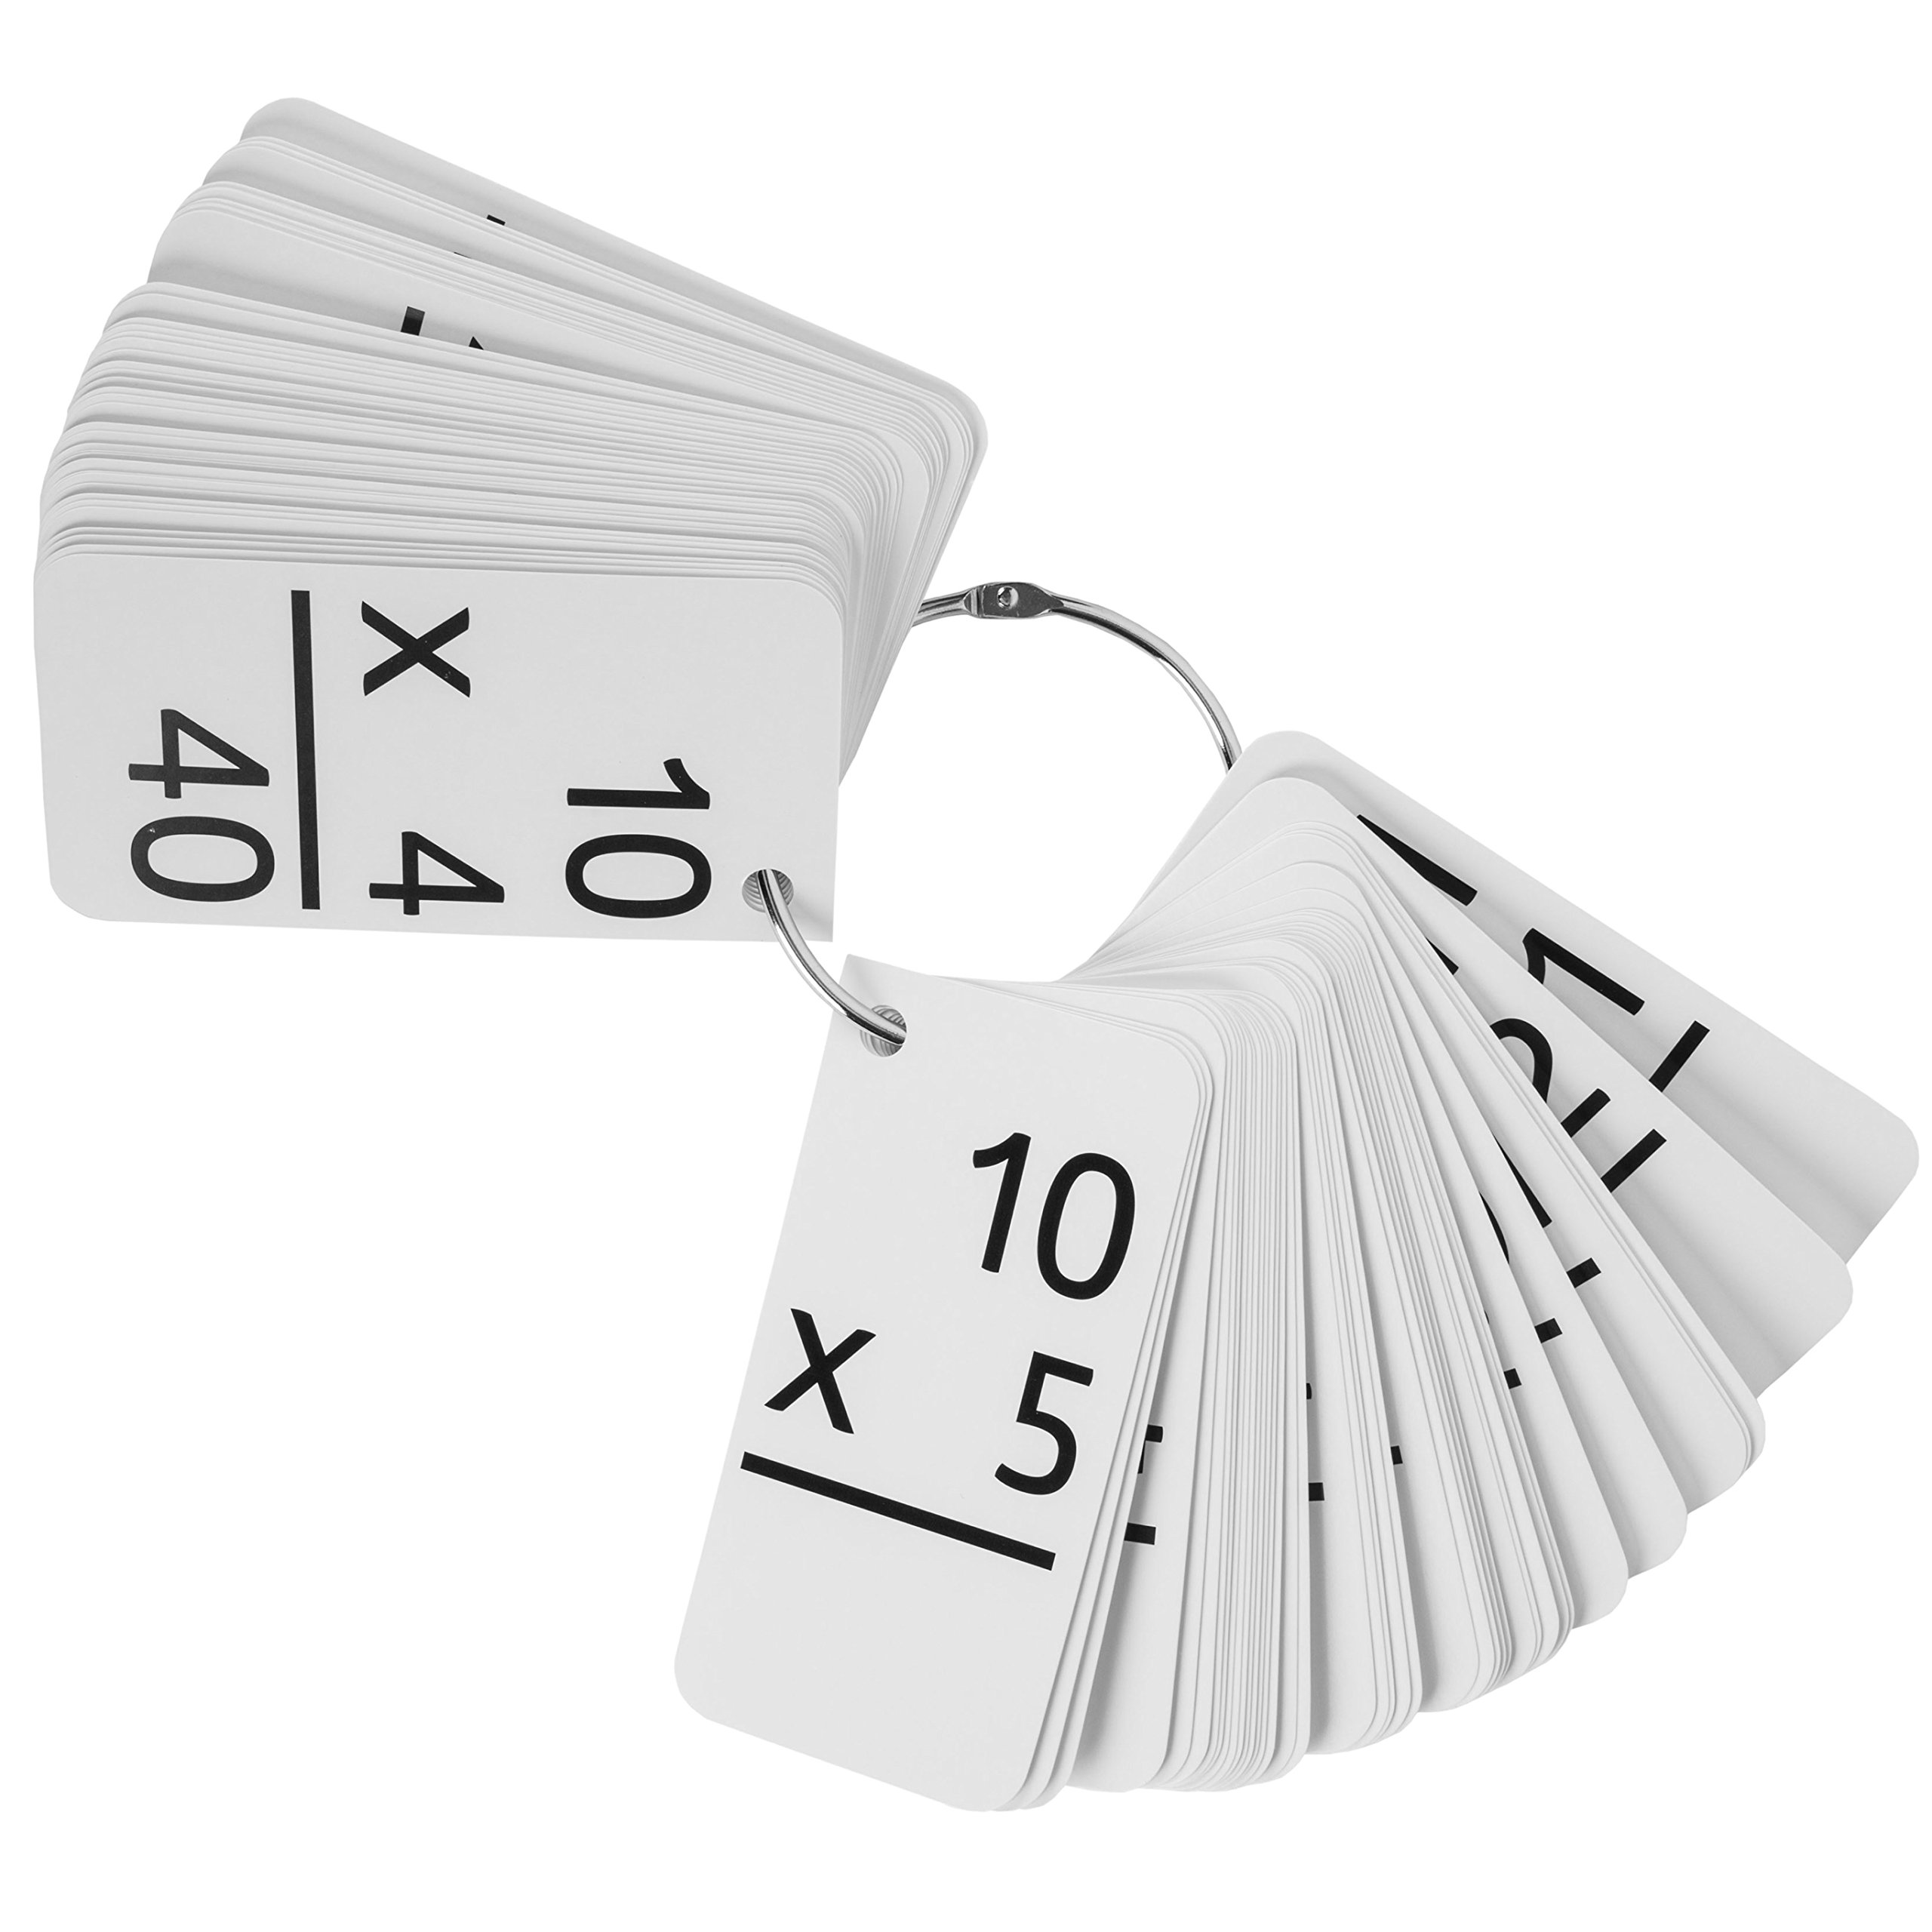 Star Education Multiplication Flash Cards, 0-12 (All Facts-169 Cards) With 2 Rings by Star Right (Image #4)